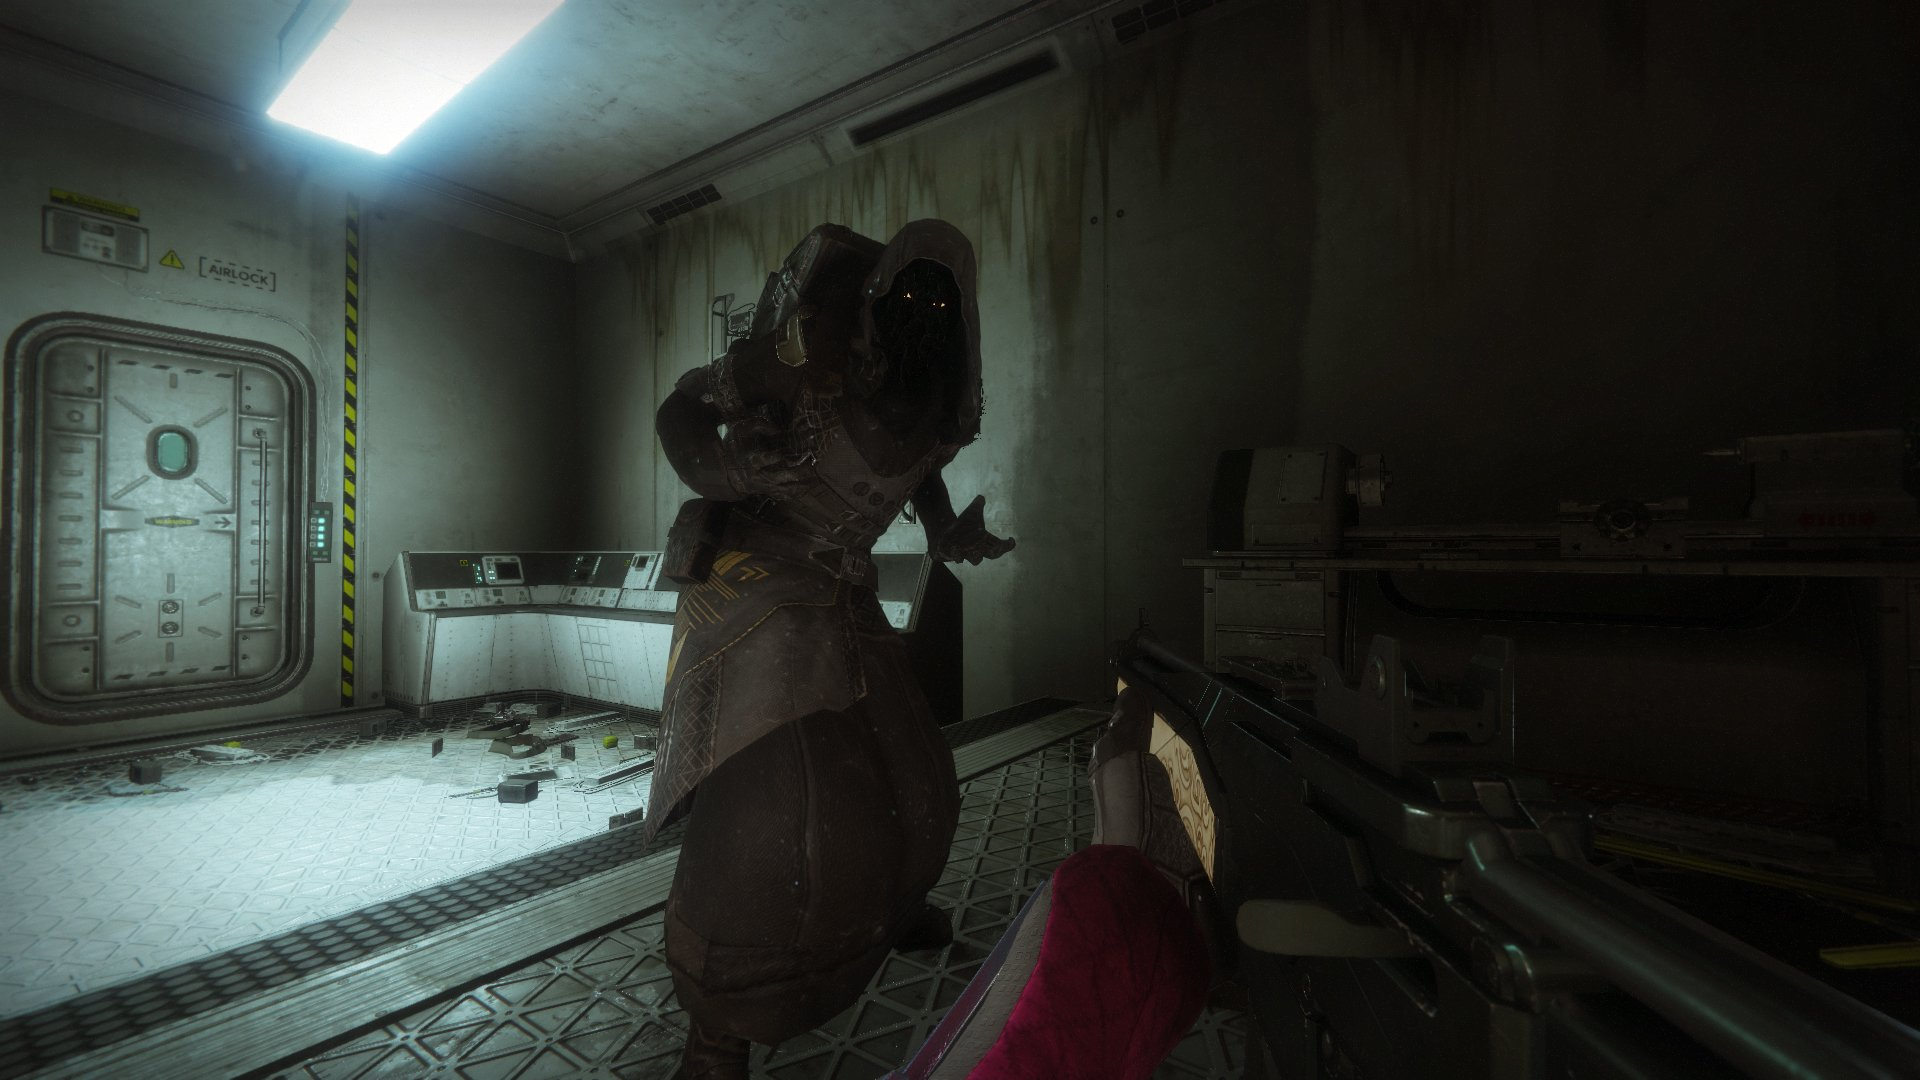 During the week of April 26 in Destiny 2, Xur can be found inside The Rig area on Titan.